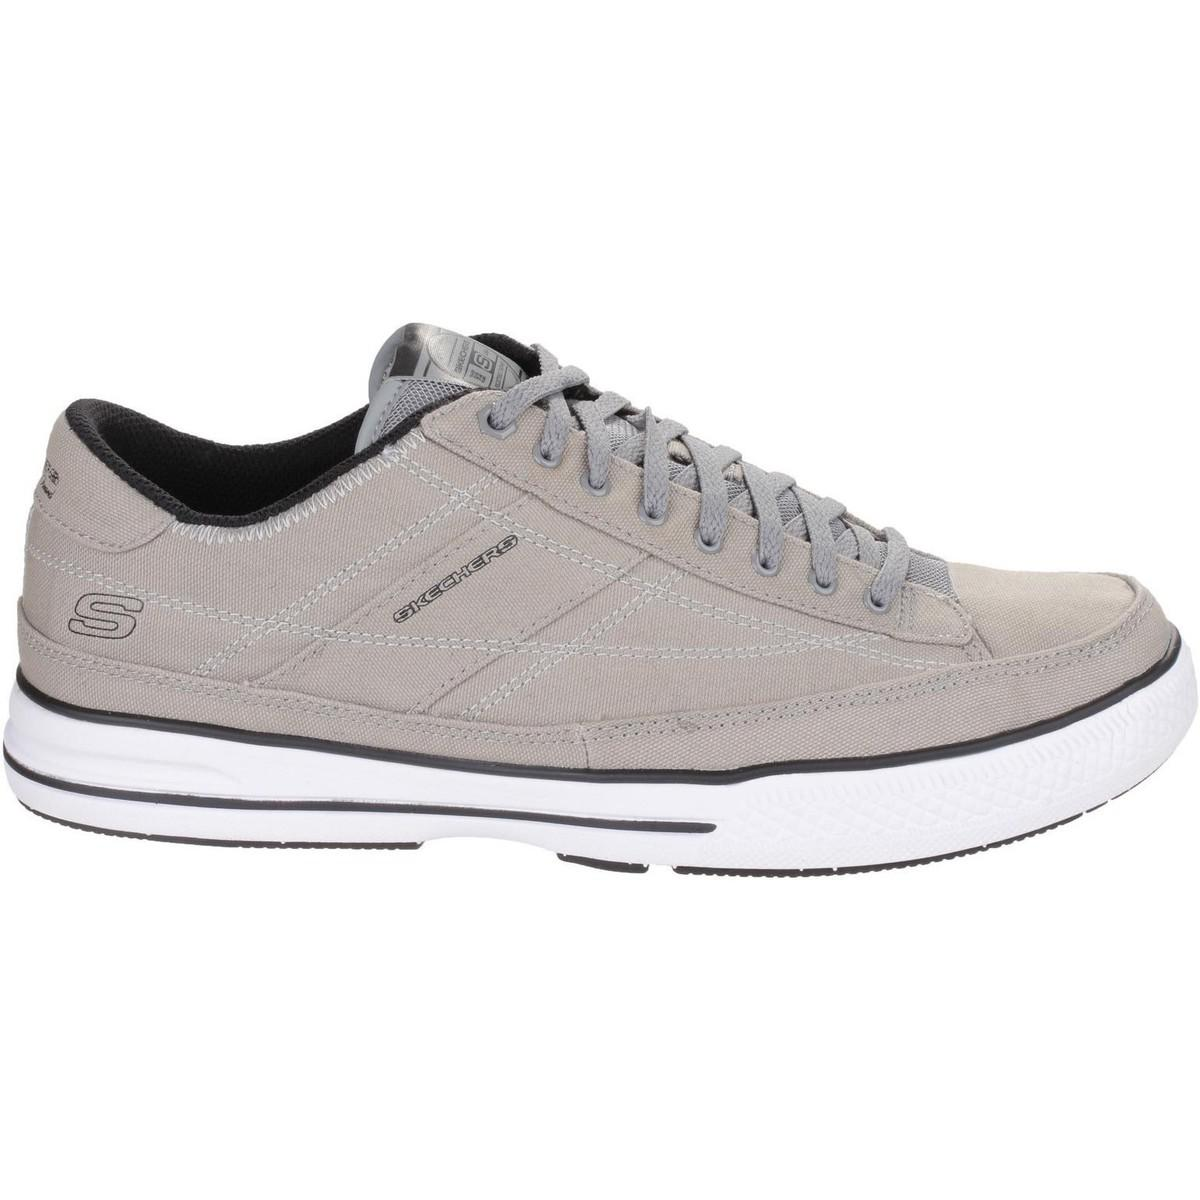 Skechers Arcade Chat Mf Men's Shoes (trainers) In Grey in Grey for Men